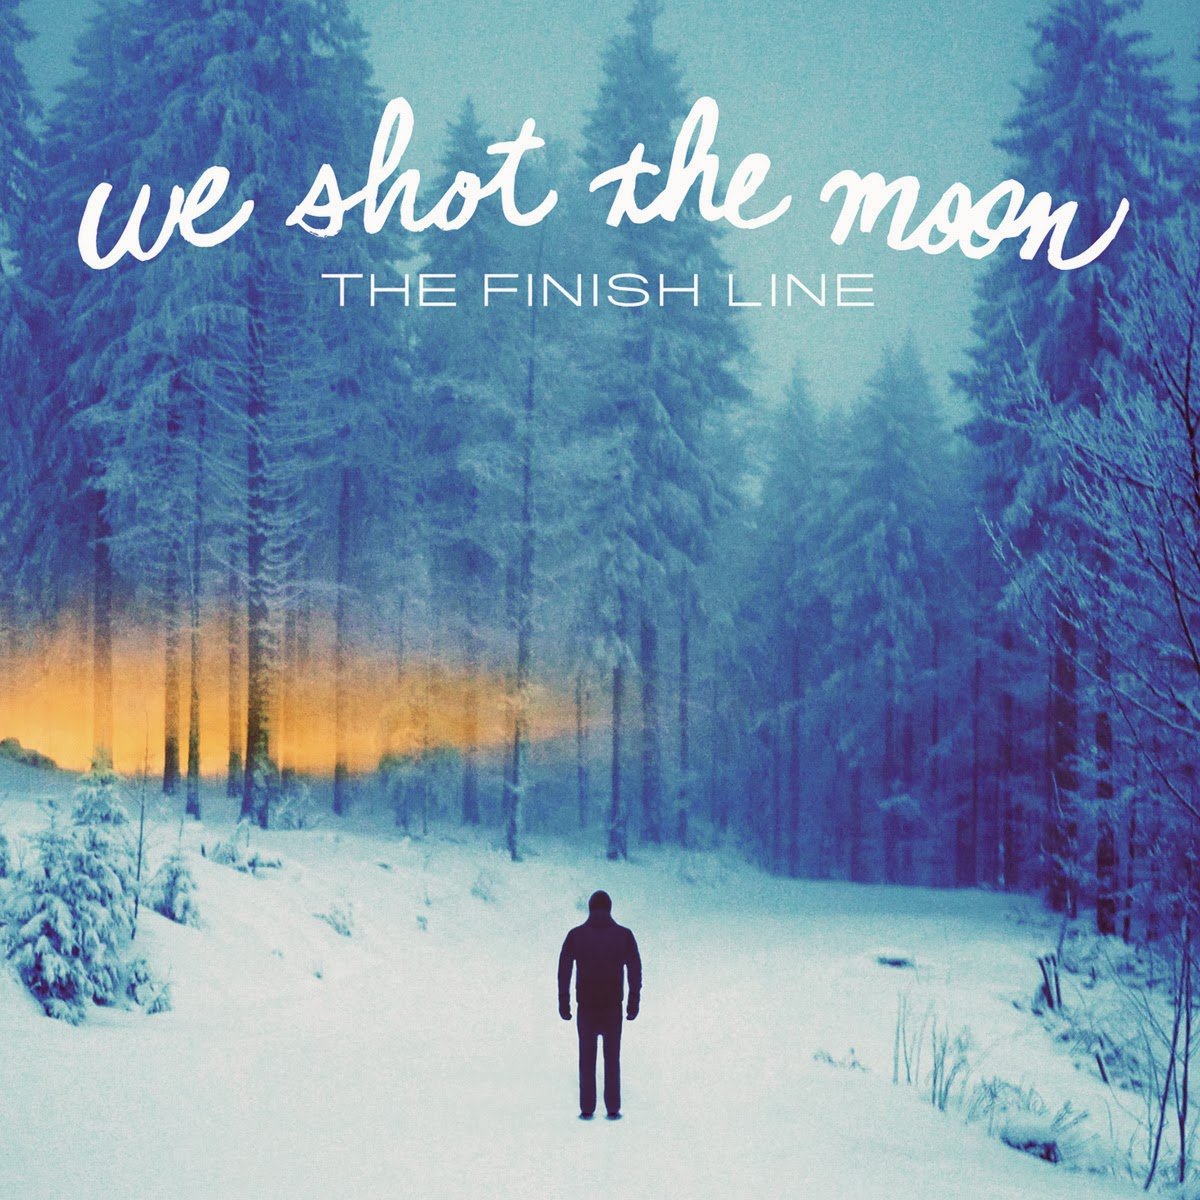 We Shot the Moon - The Finish Line 2014 English Christian Album Download